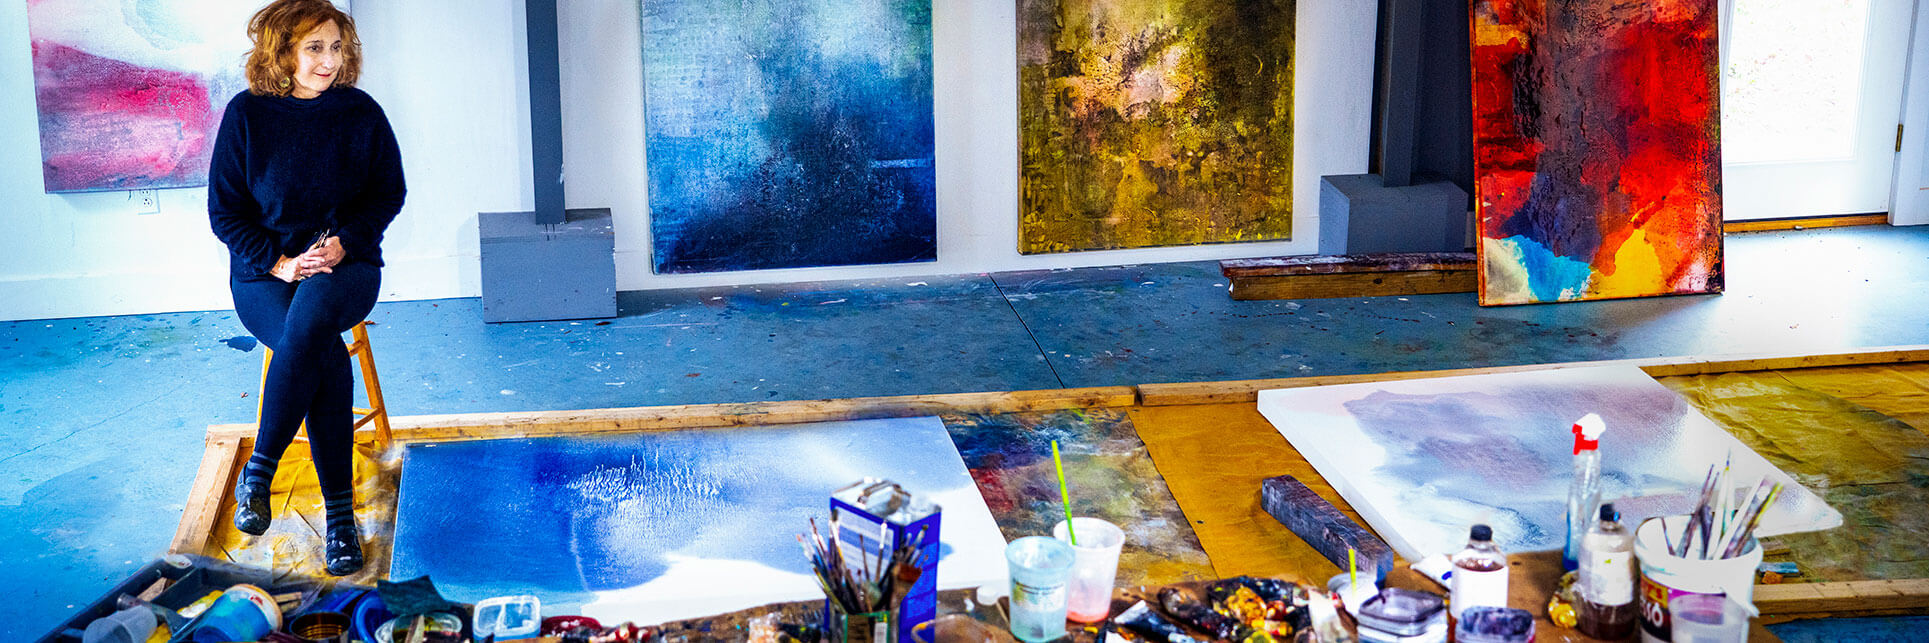 Studio life alchemy colorfield painting action painting New England